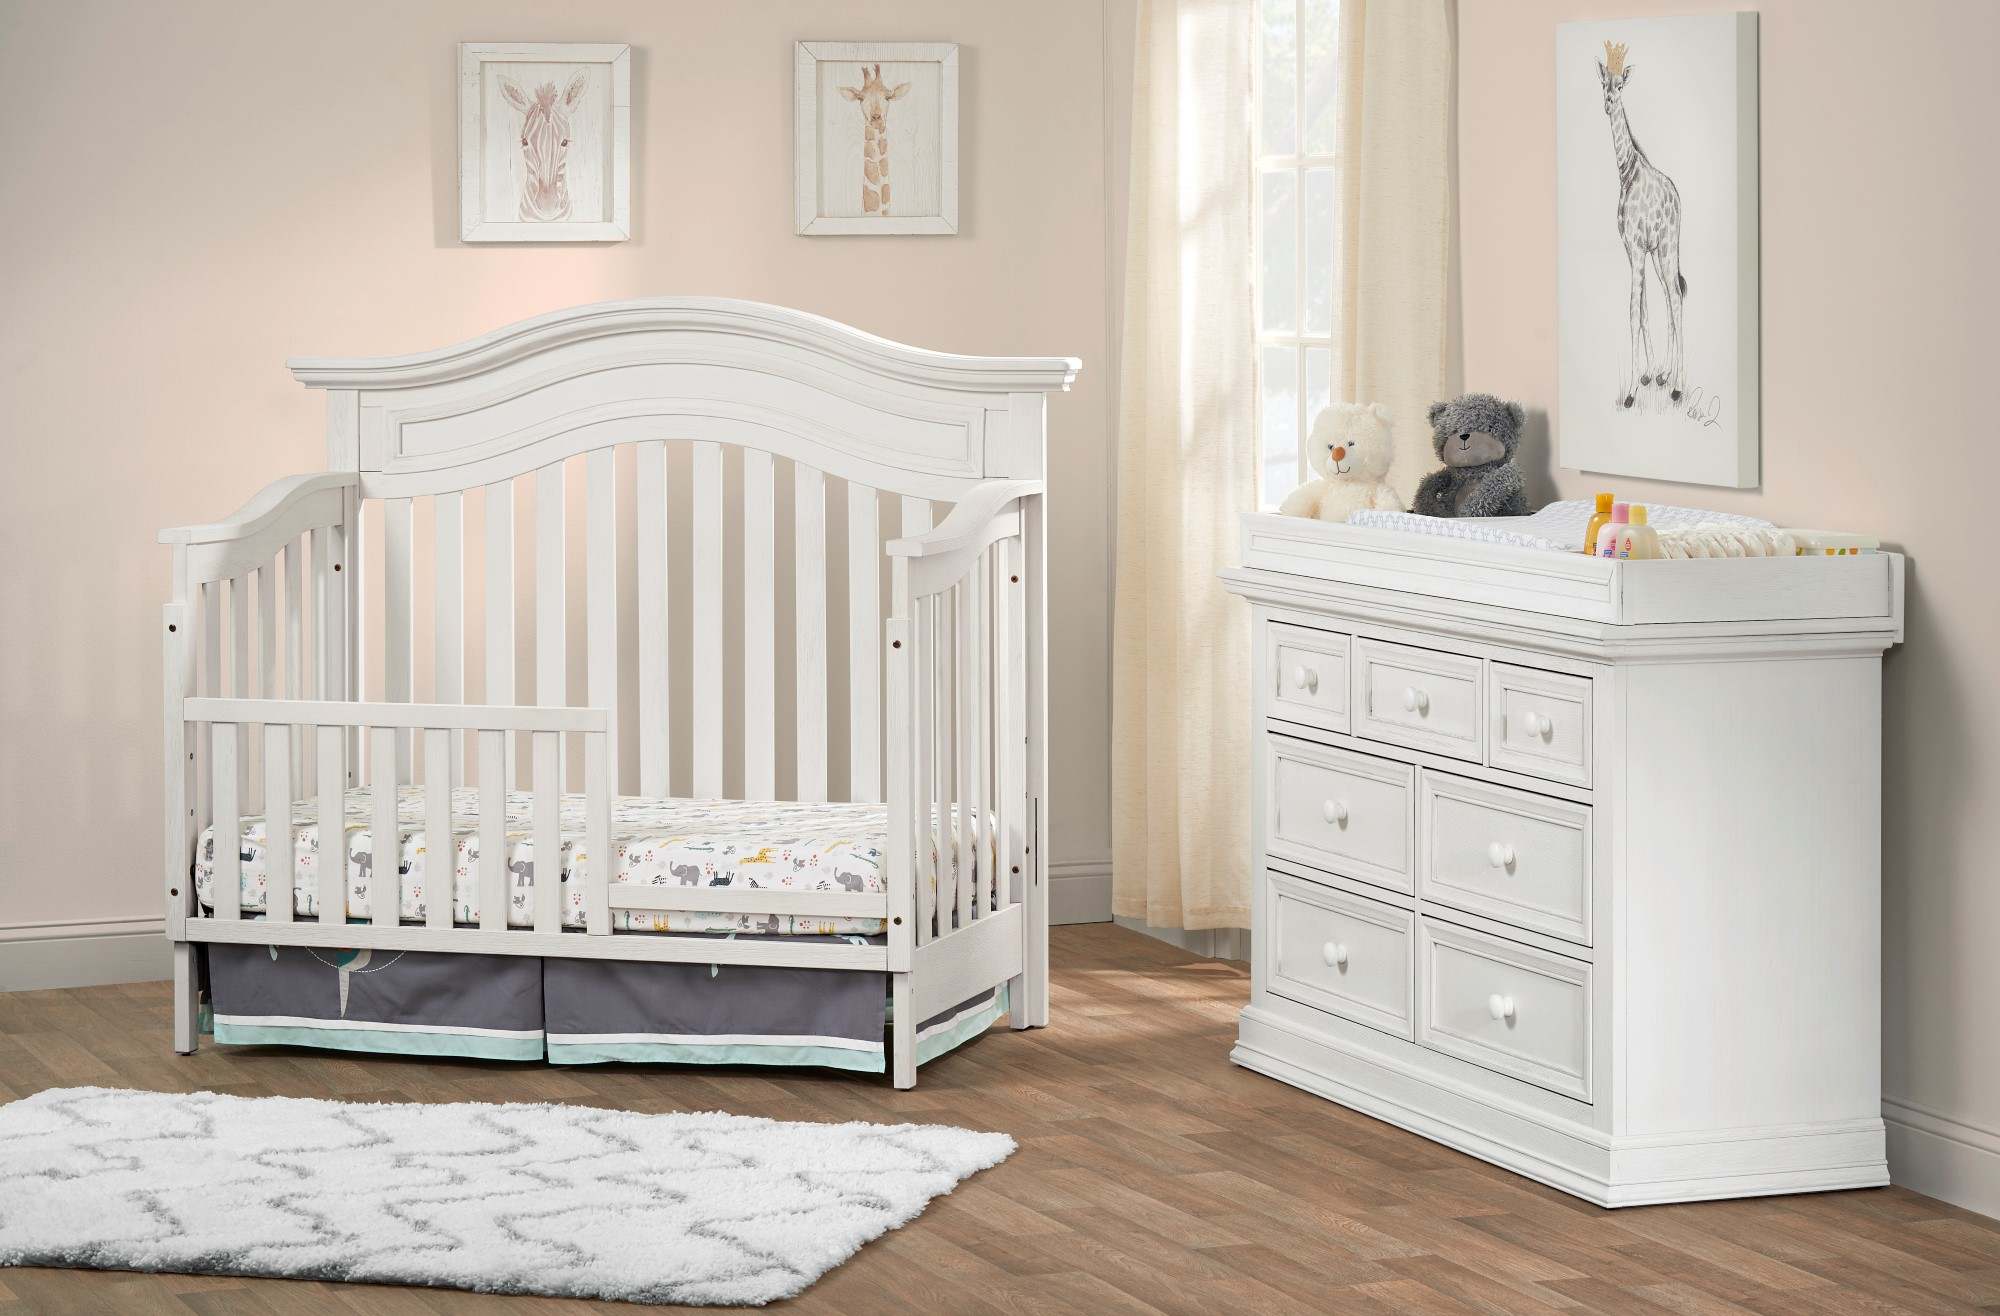 Piermont Rustic Stonington Gray Collection Oxford Baby